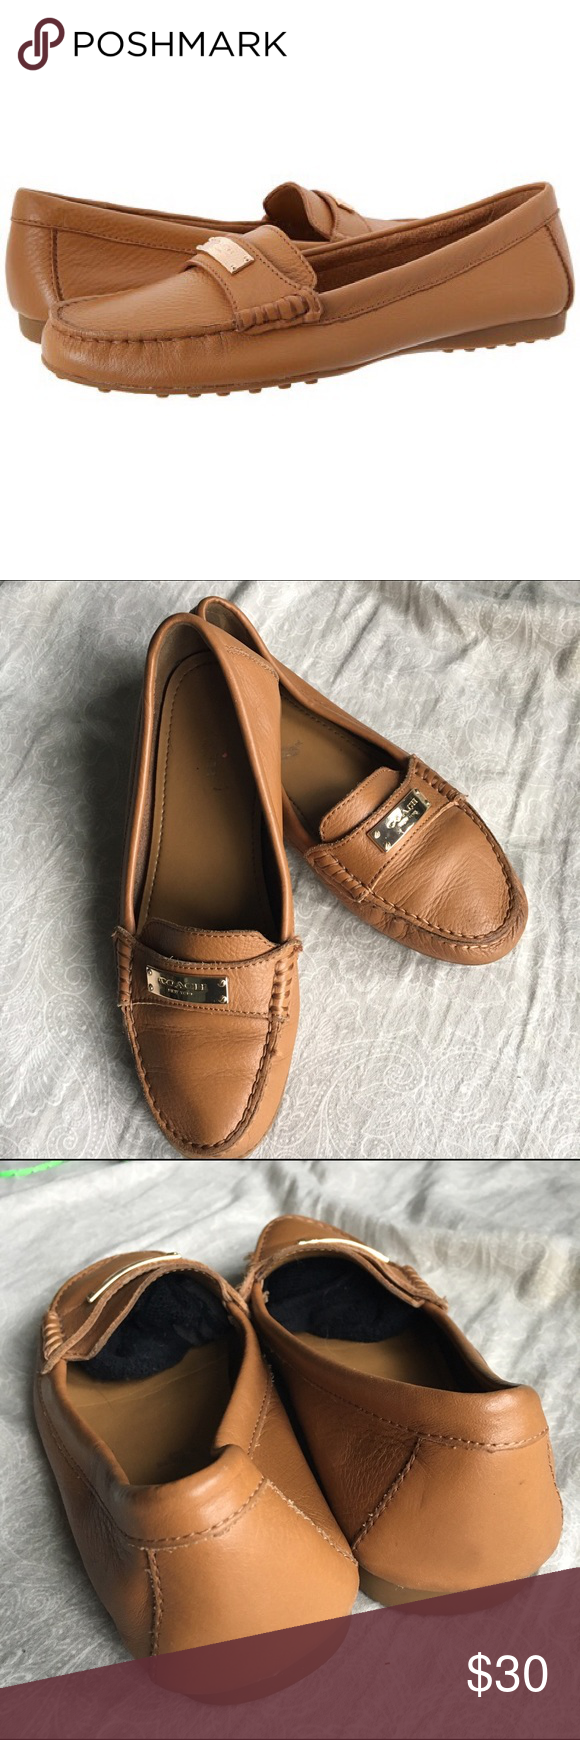 768f7e5b97e Tan coach Fredrica loafers Very classy tan leather coach loafers with coach  logo plate on the top. Ribbed rubber bottom for long lasting quality.